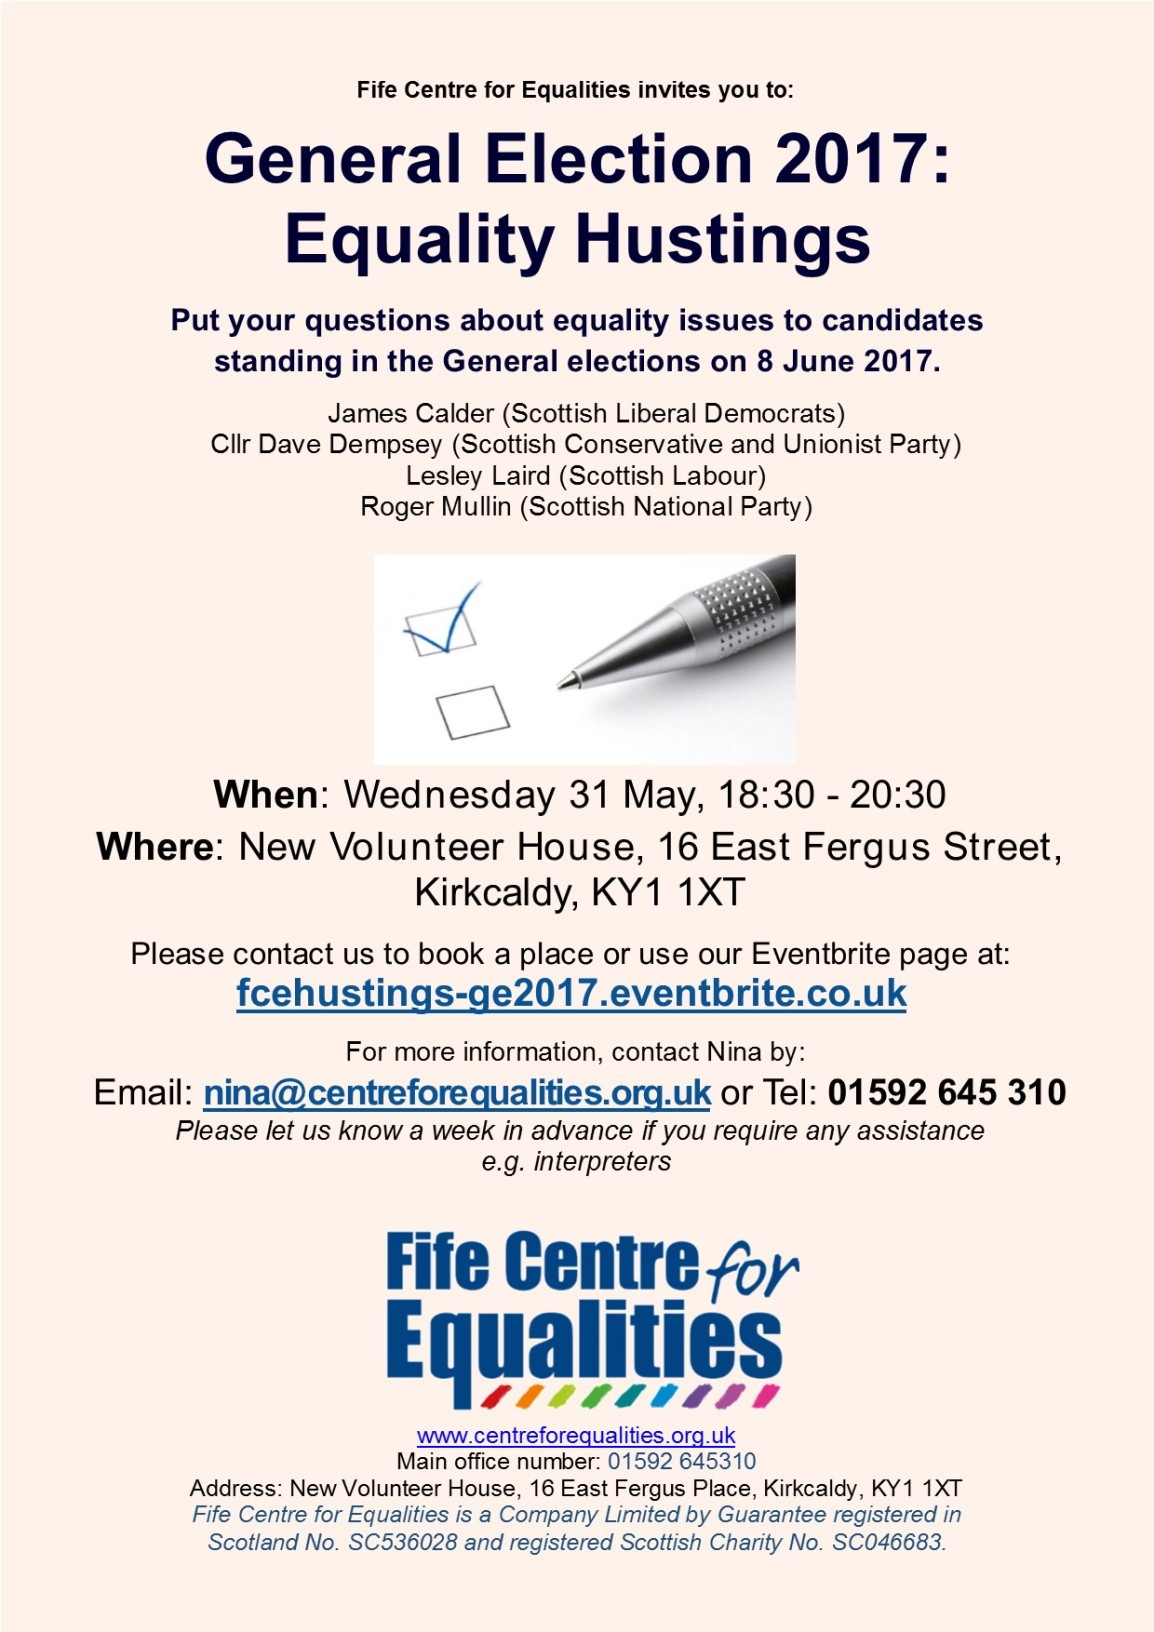 FCE GE17 Hustings flyer 310517 v6